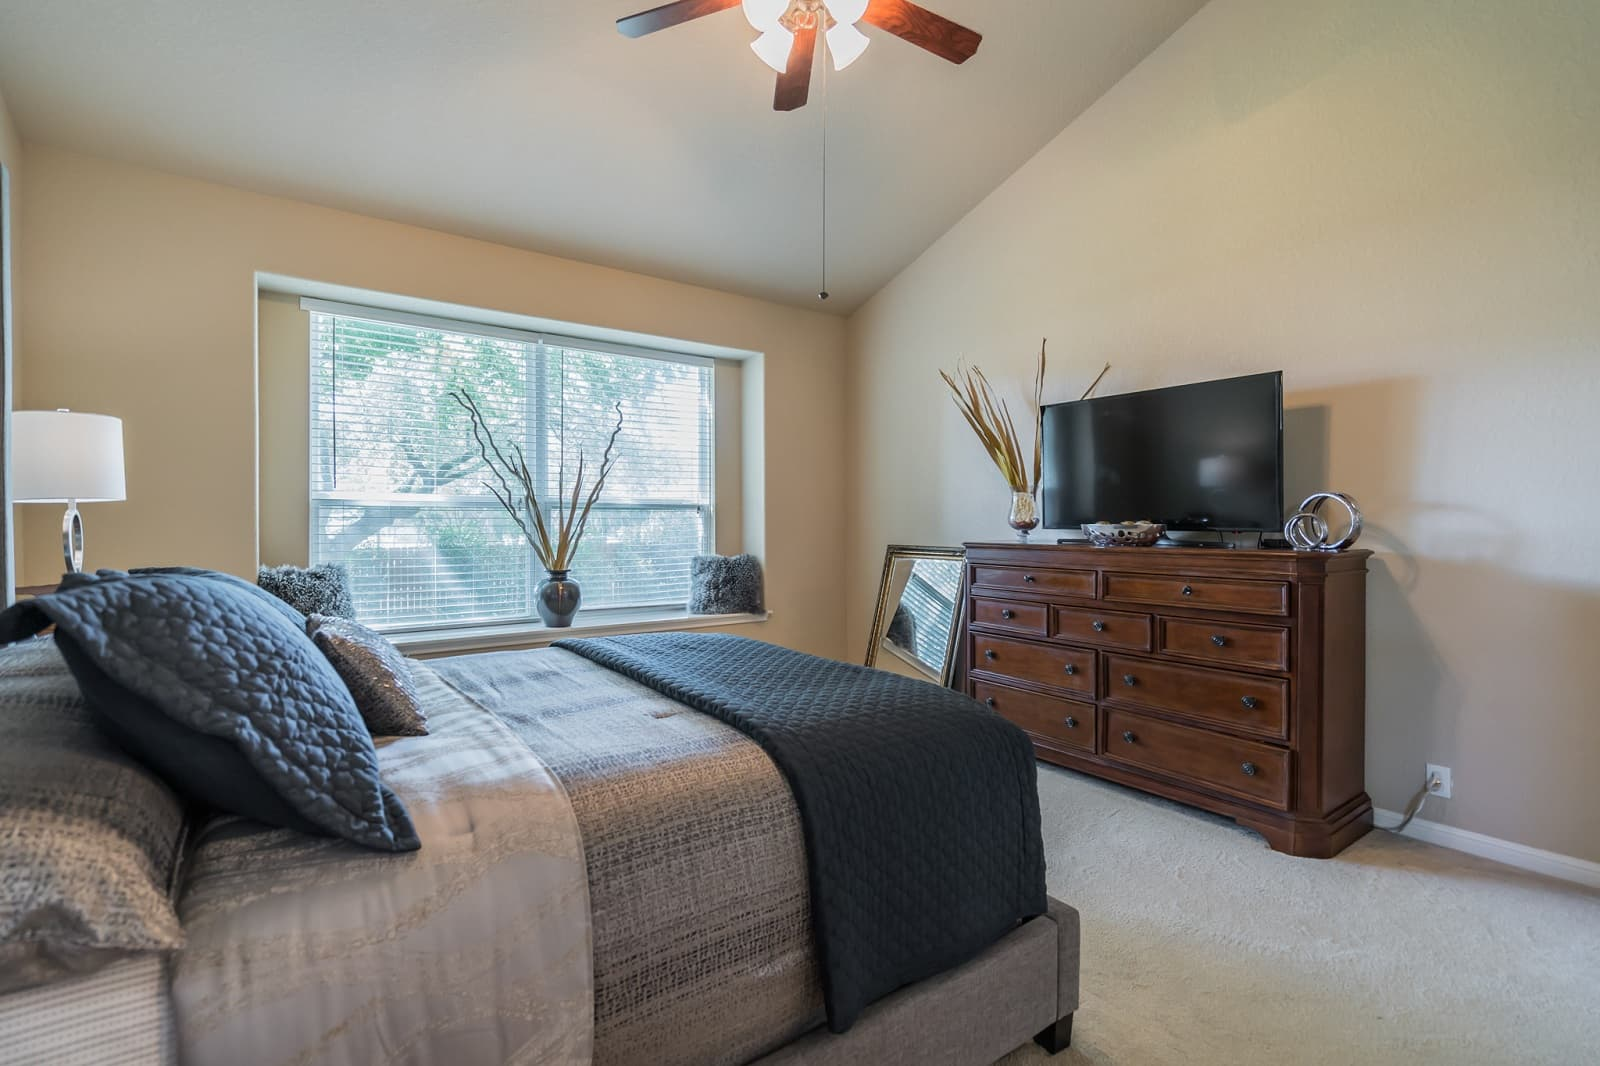 Real Estate Photography in Cibolo - TX - Bedroom View